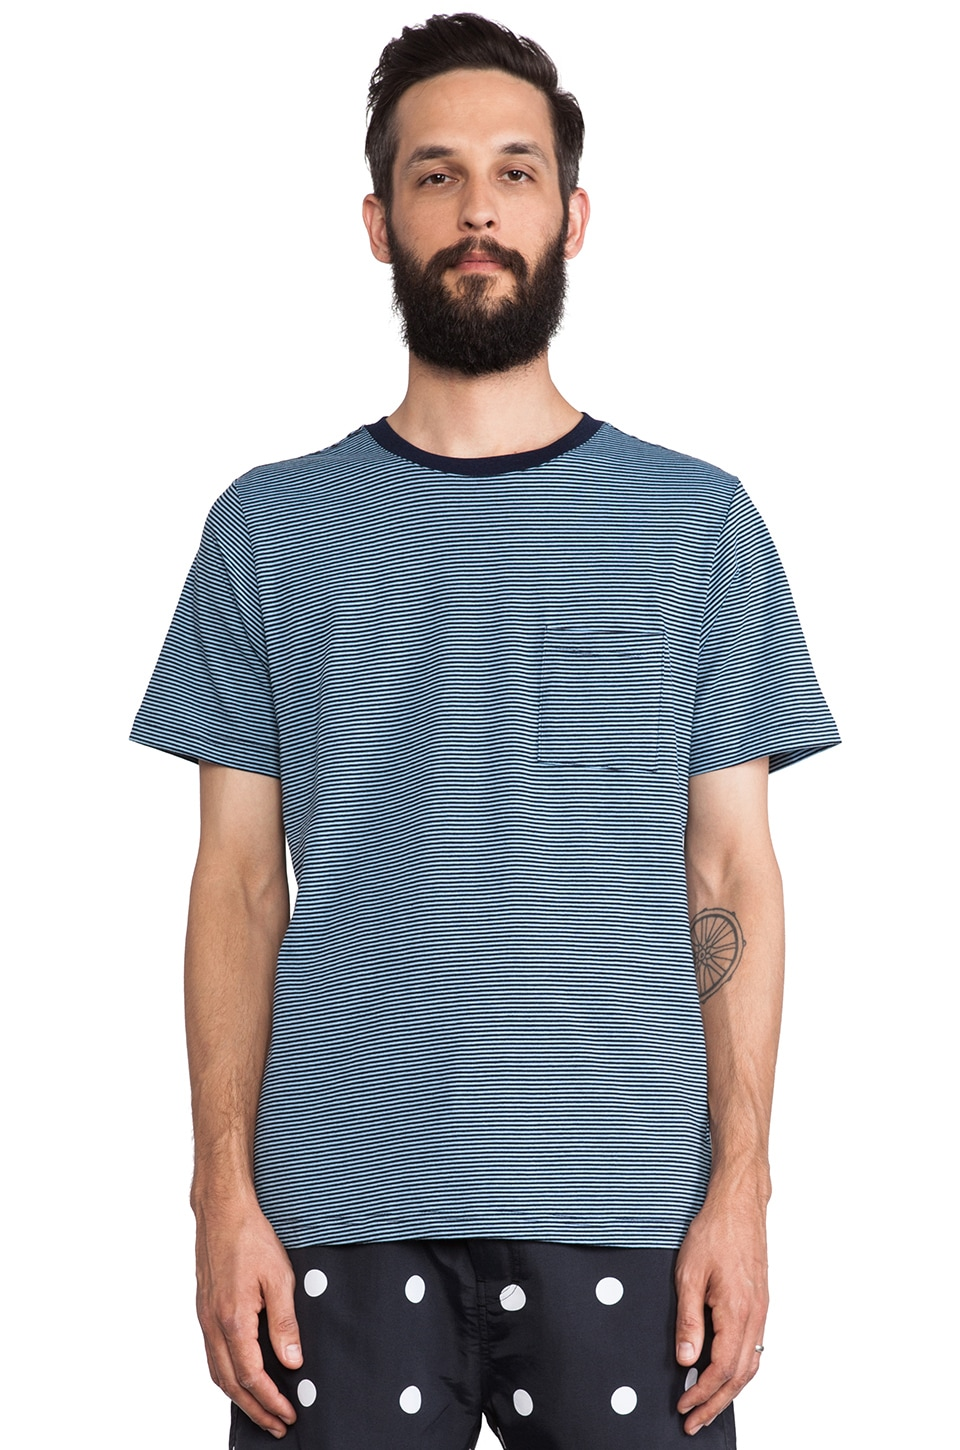 SATURDAYS NYC Randall Beach Stripe Tee in Indigo